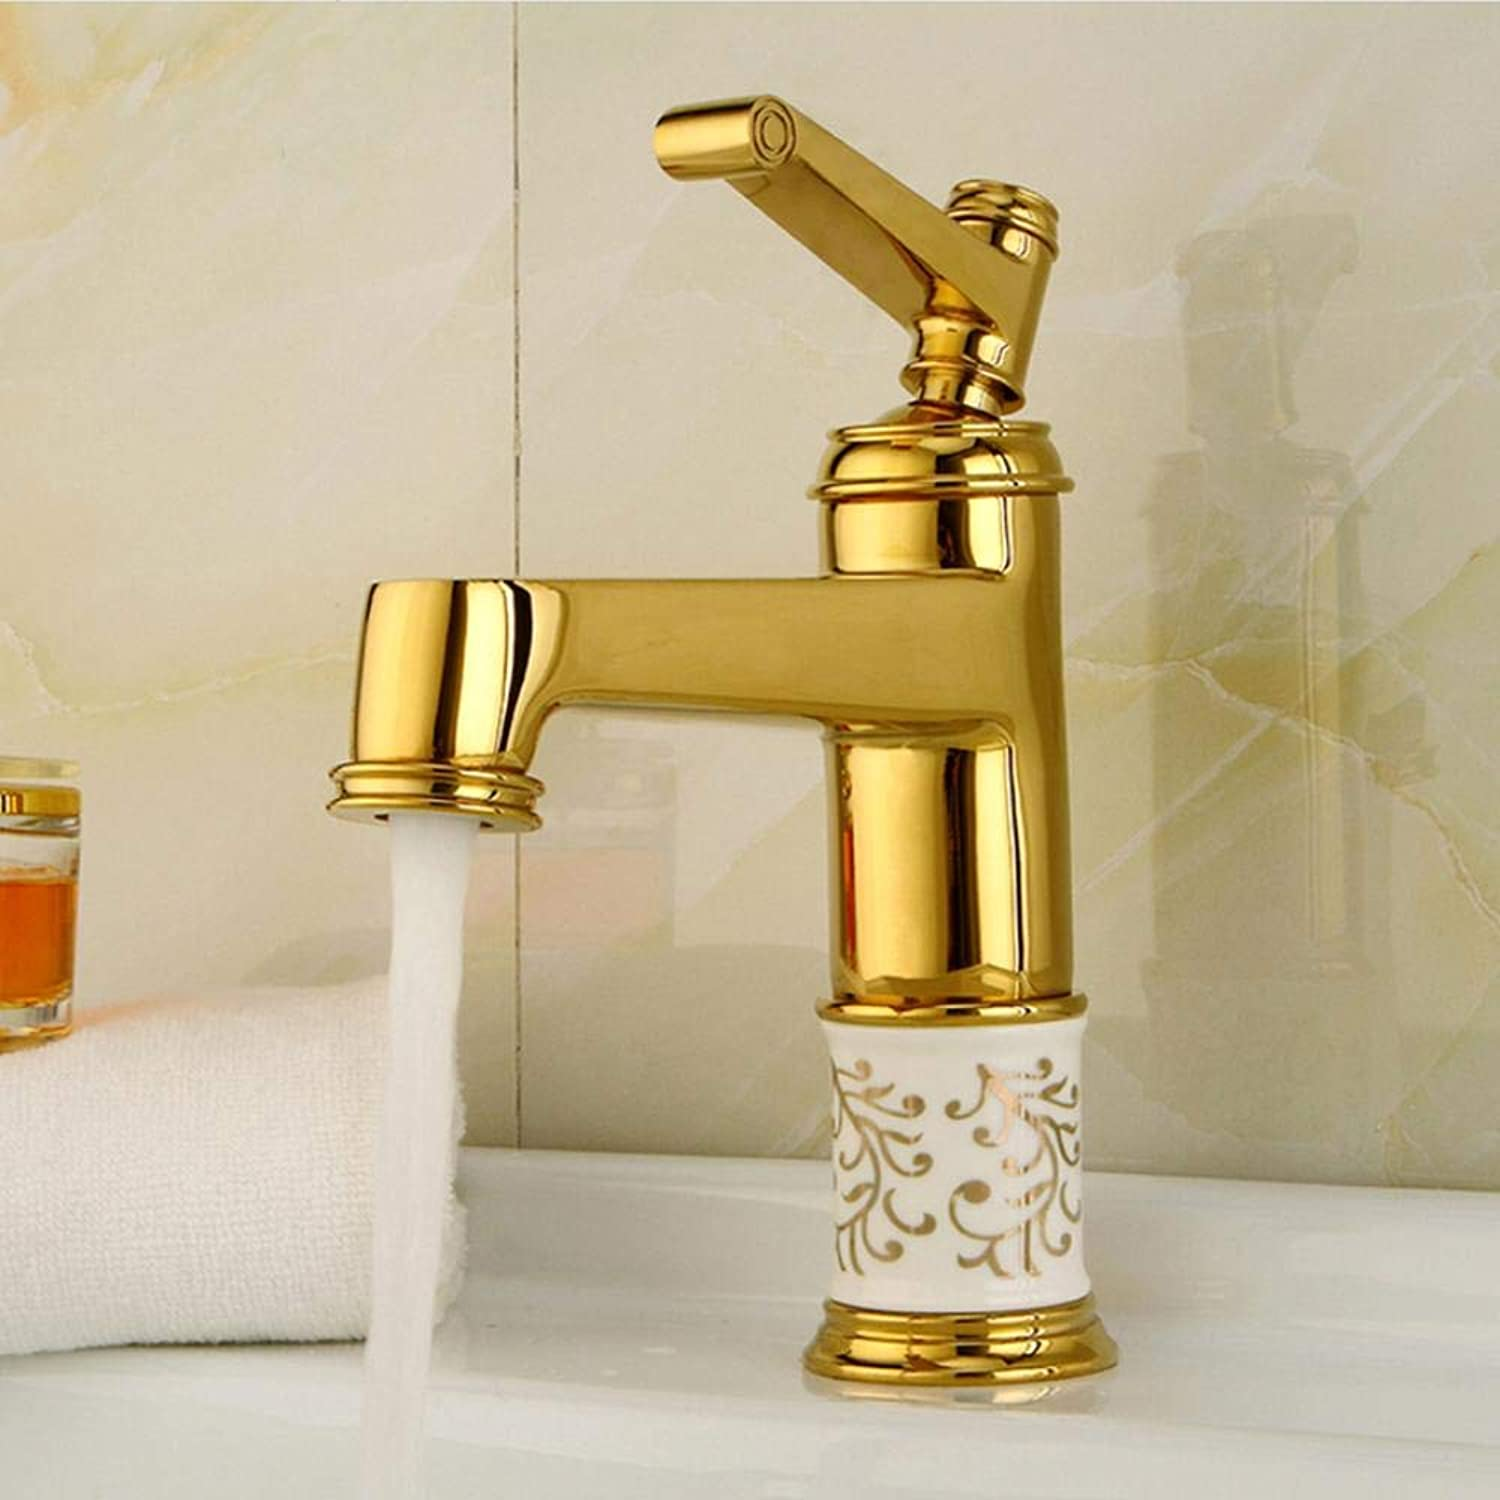 Bathroom Sink Taps Bathroom Basin gold Faucet Brass with Crystal Body Tap Luxury Single Handle Hot and Cold Water